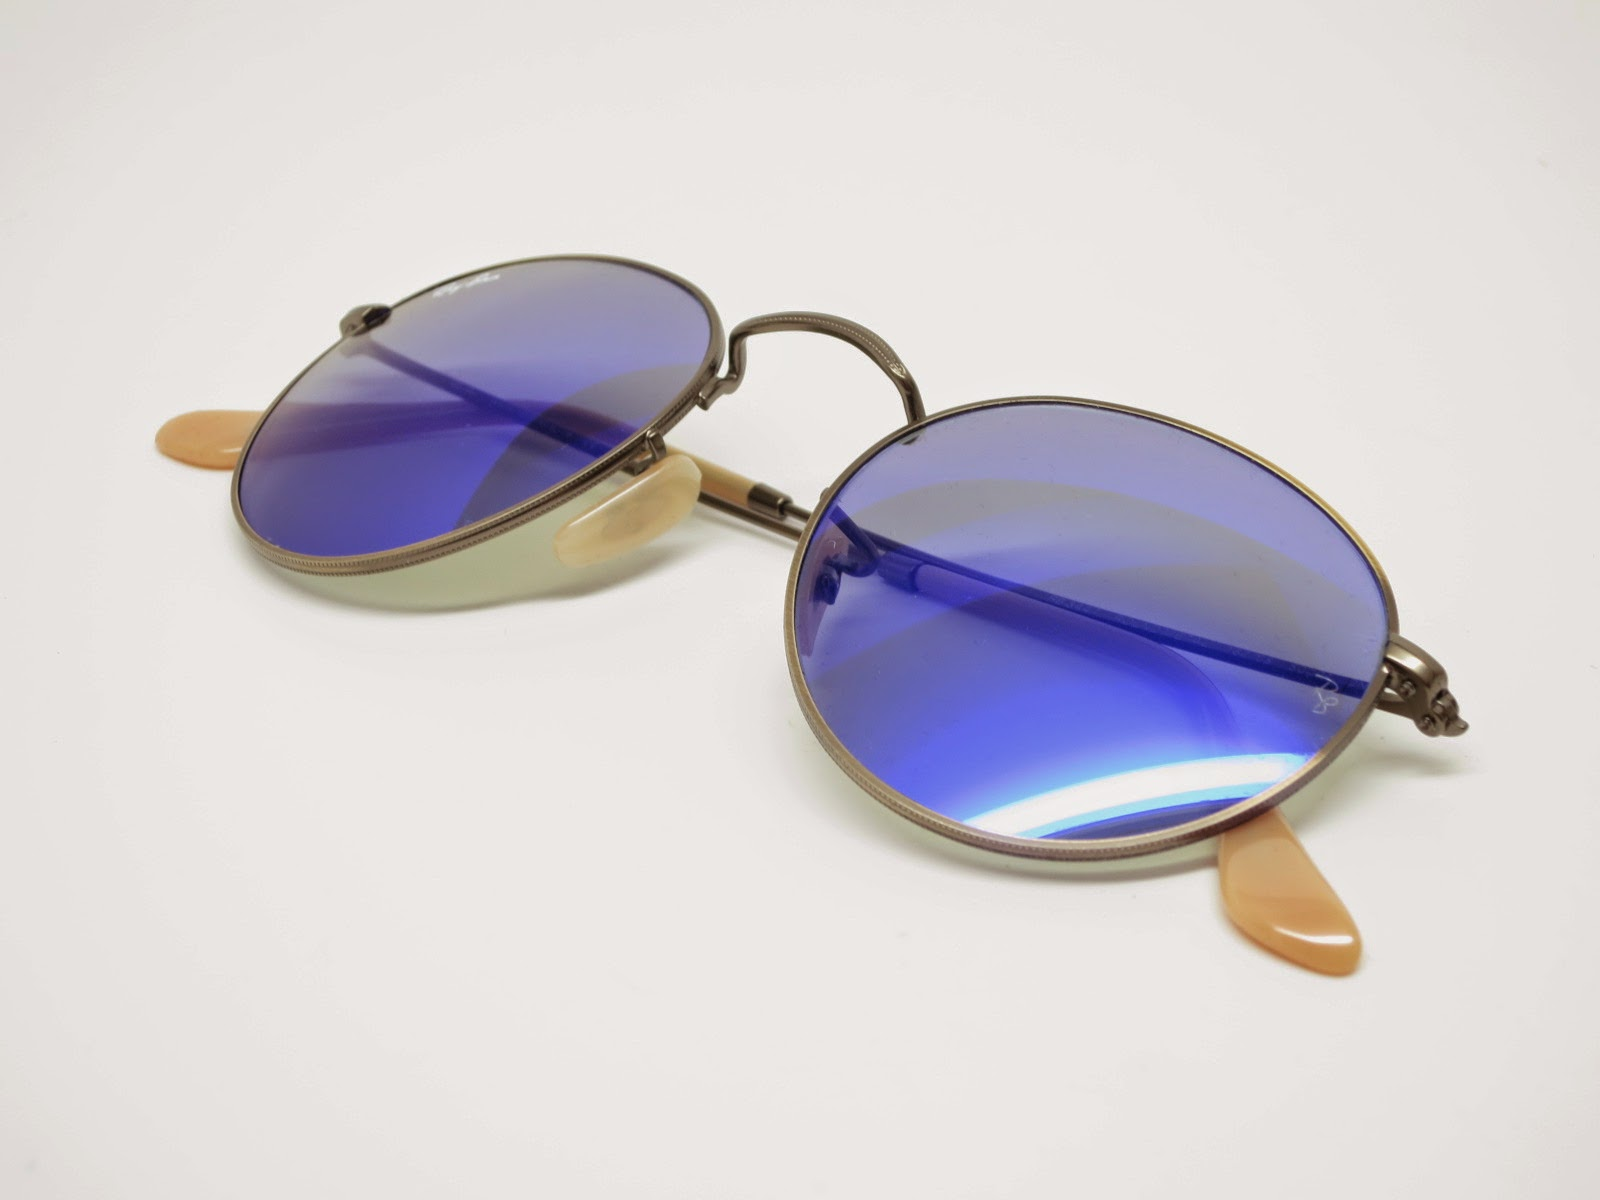 e72f9d236c Ray-Ban RB 3447 Round Metal 167 68 Blue Mirrored Sunglasses